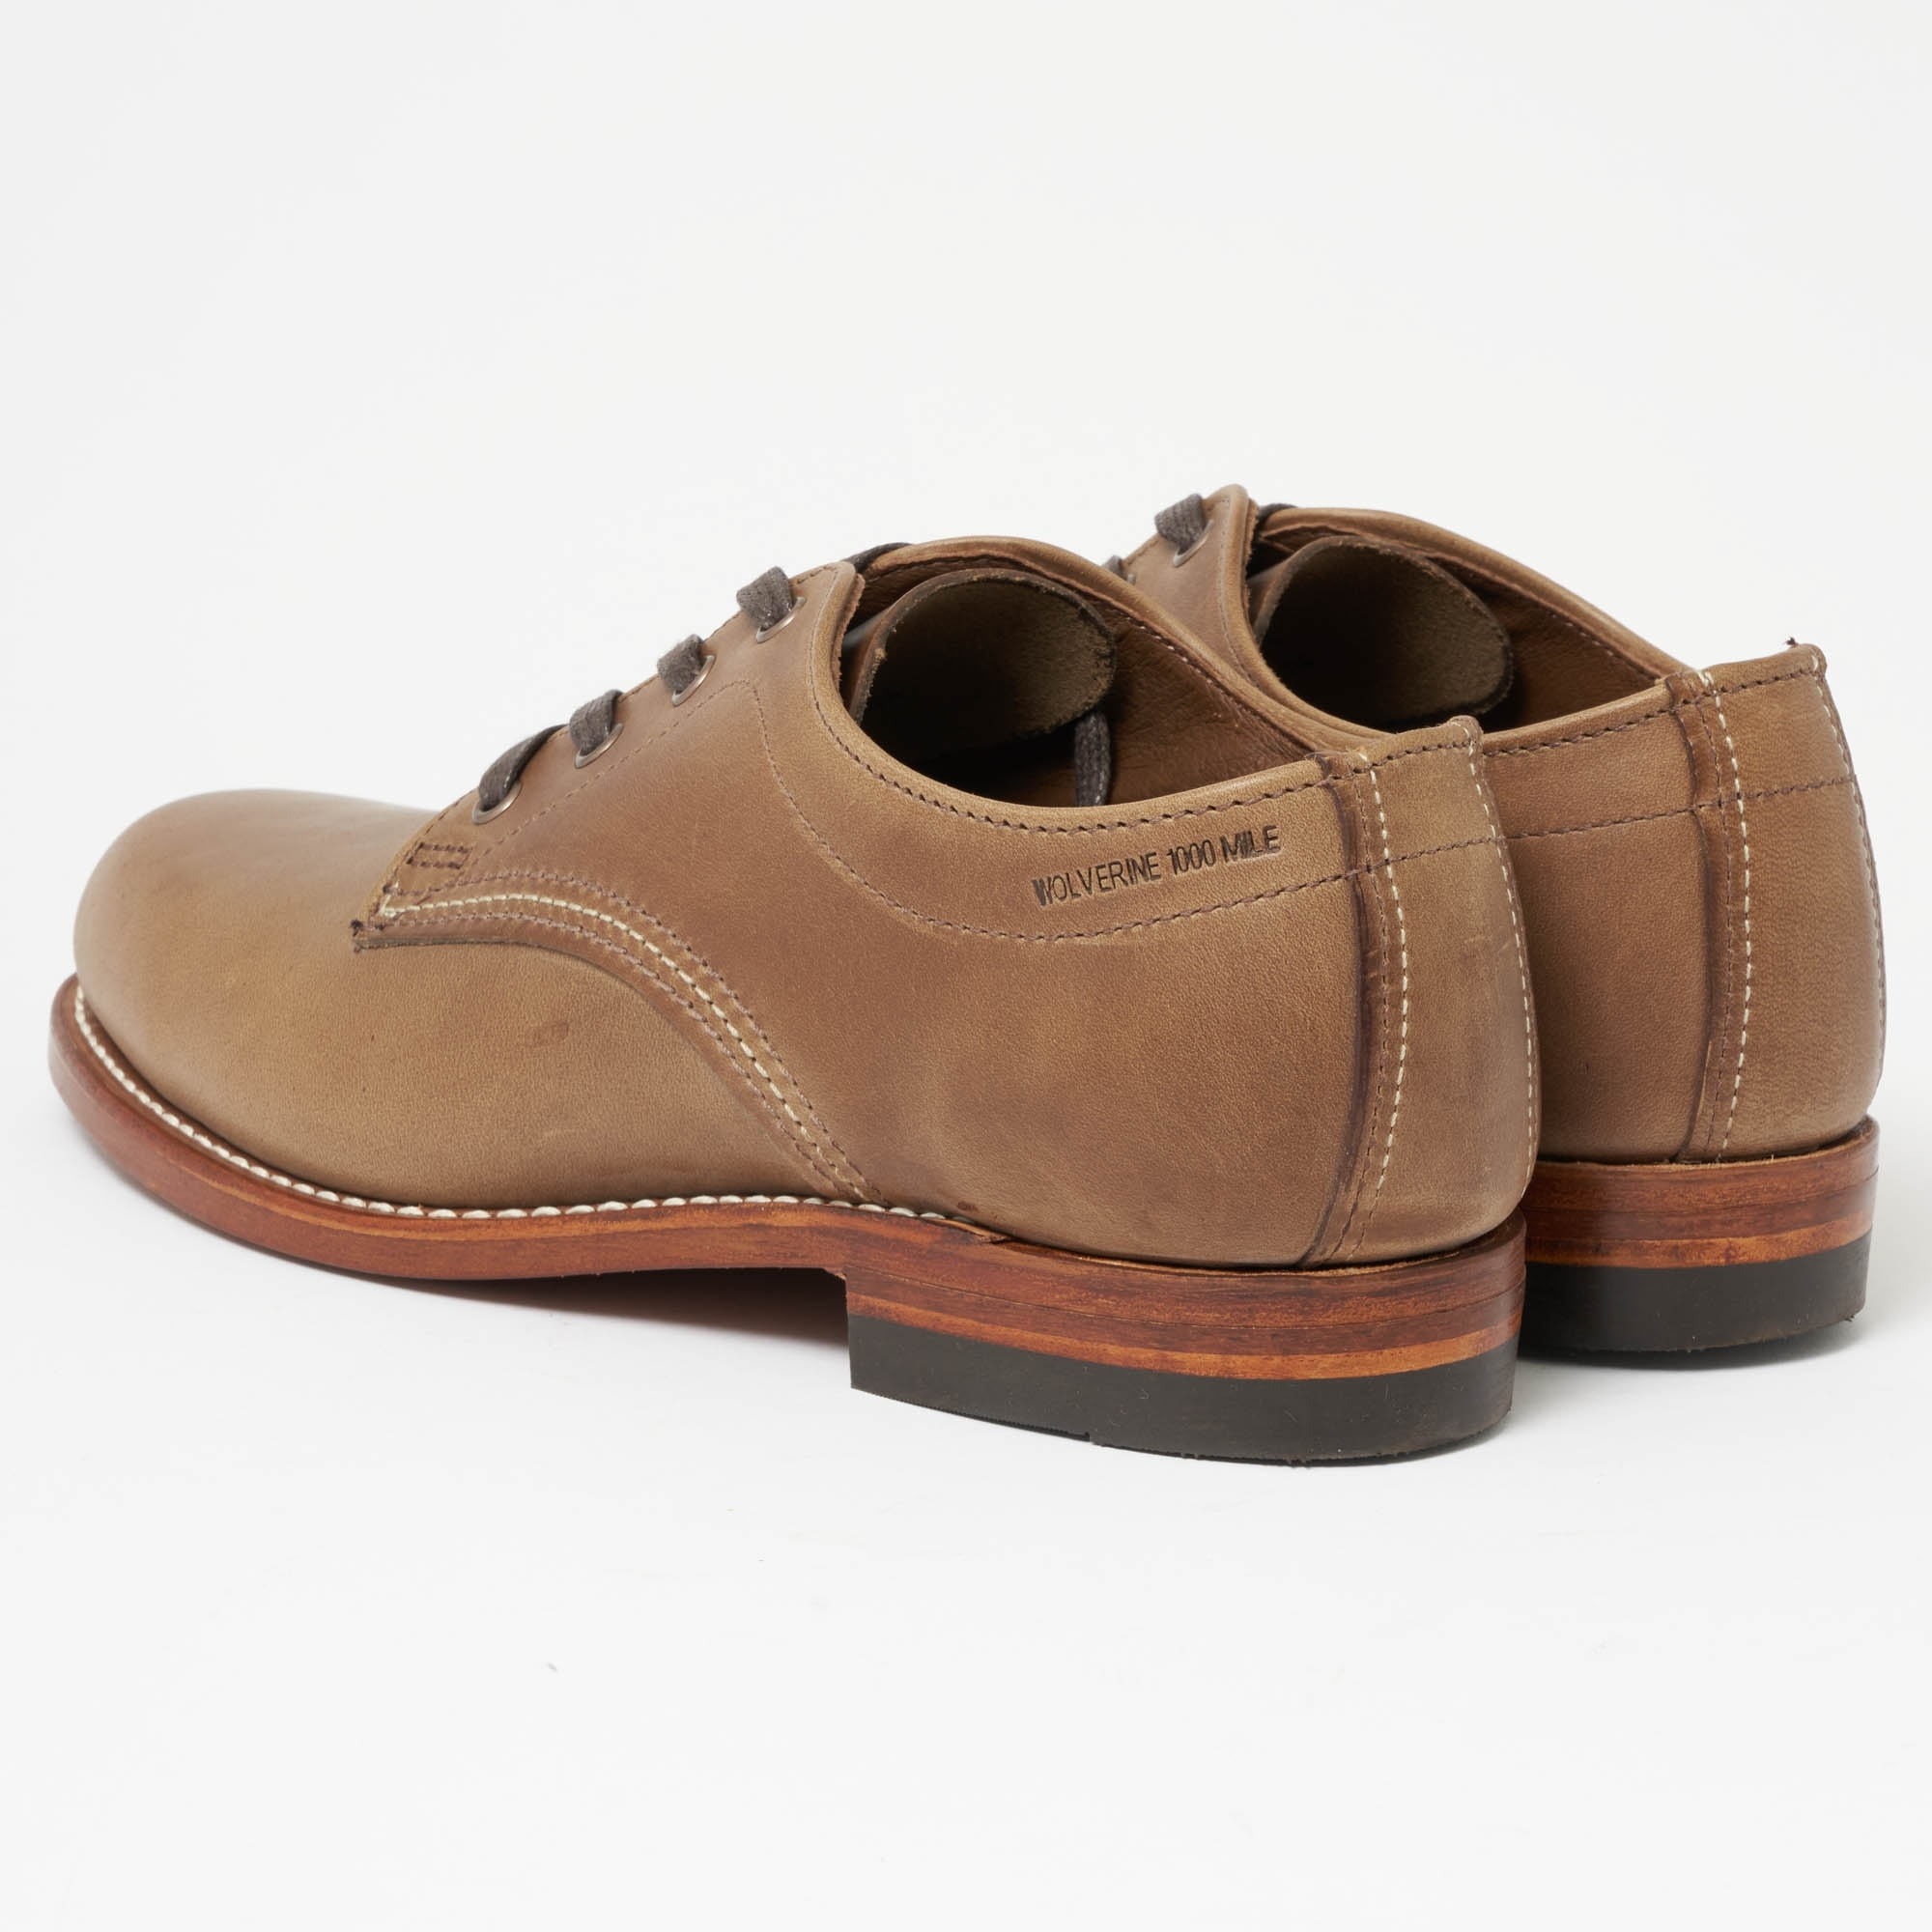 ca368a190c3 Wolverine Wolverine 1000 Mile Oxford Natural Leather Shoes W00071